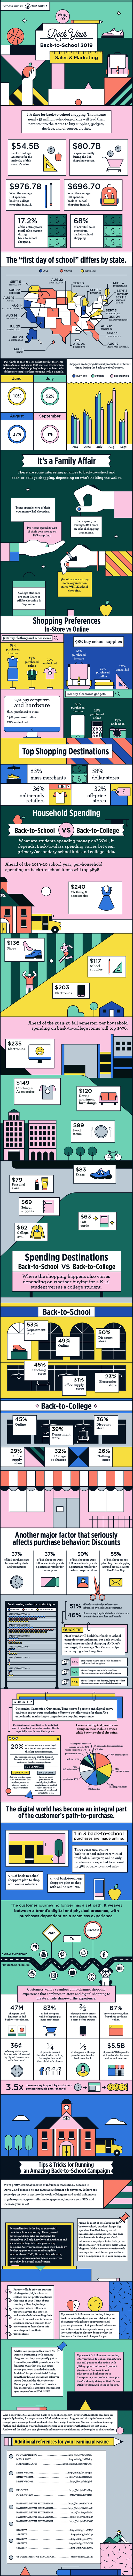 infographic outlines a range of back-to-school data points for marketers